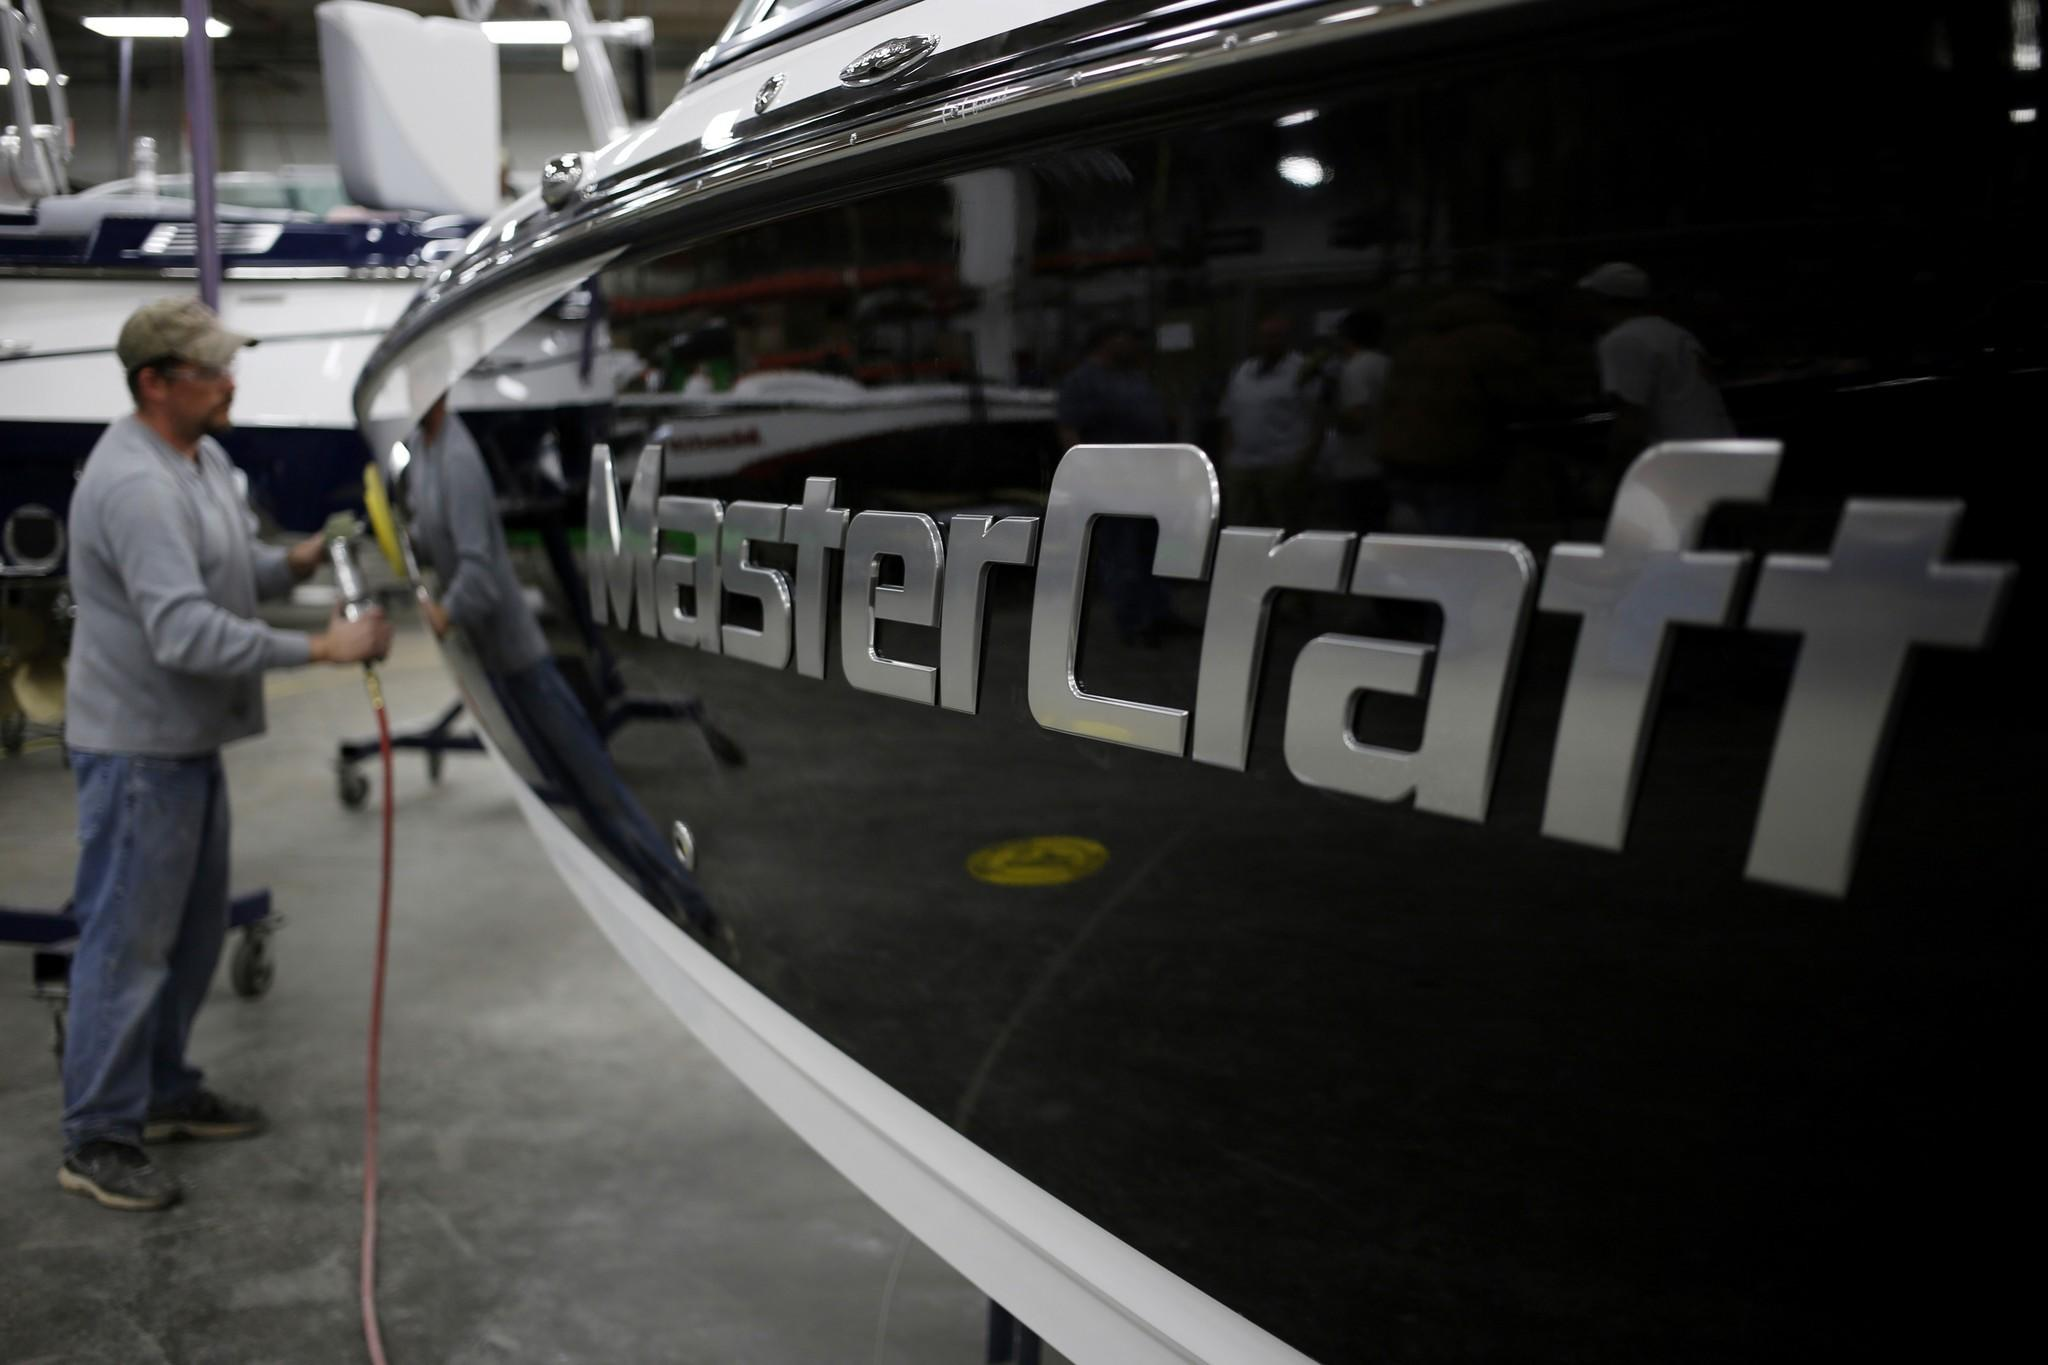 Kevin Russell buffs the finish on a speedboat on the assembly line at the Mastercraft factory in Vonore, Tenn.